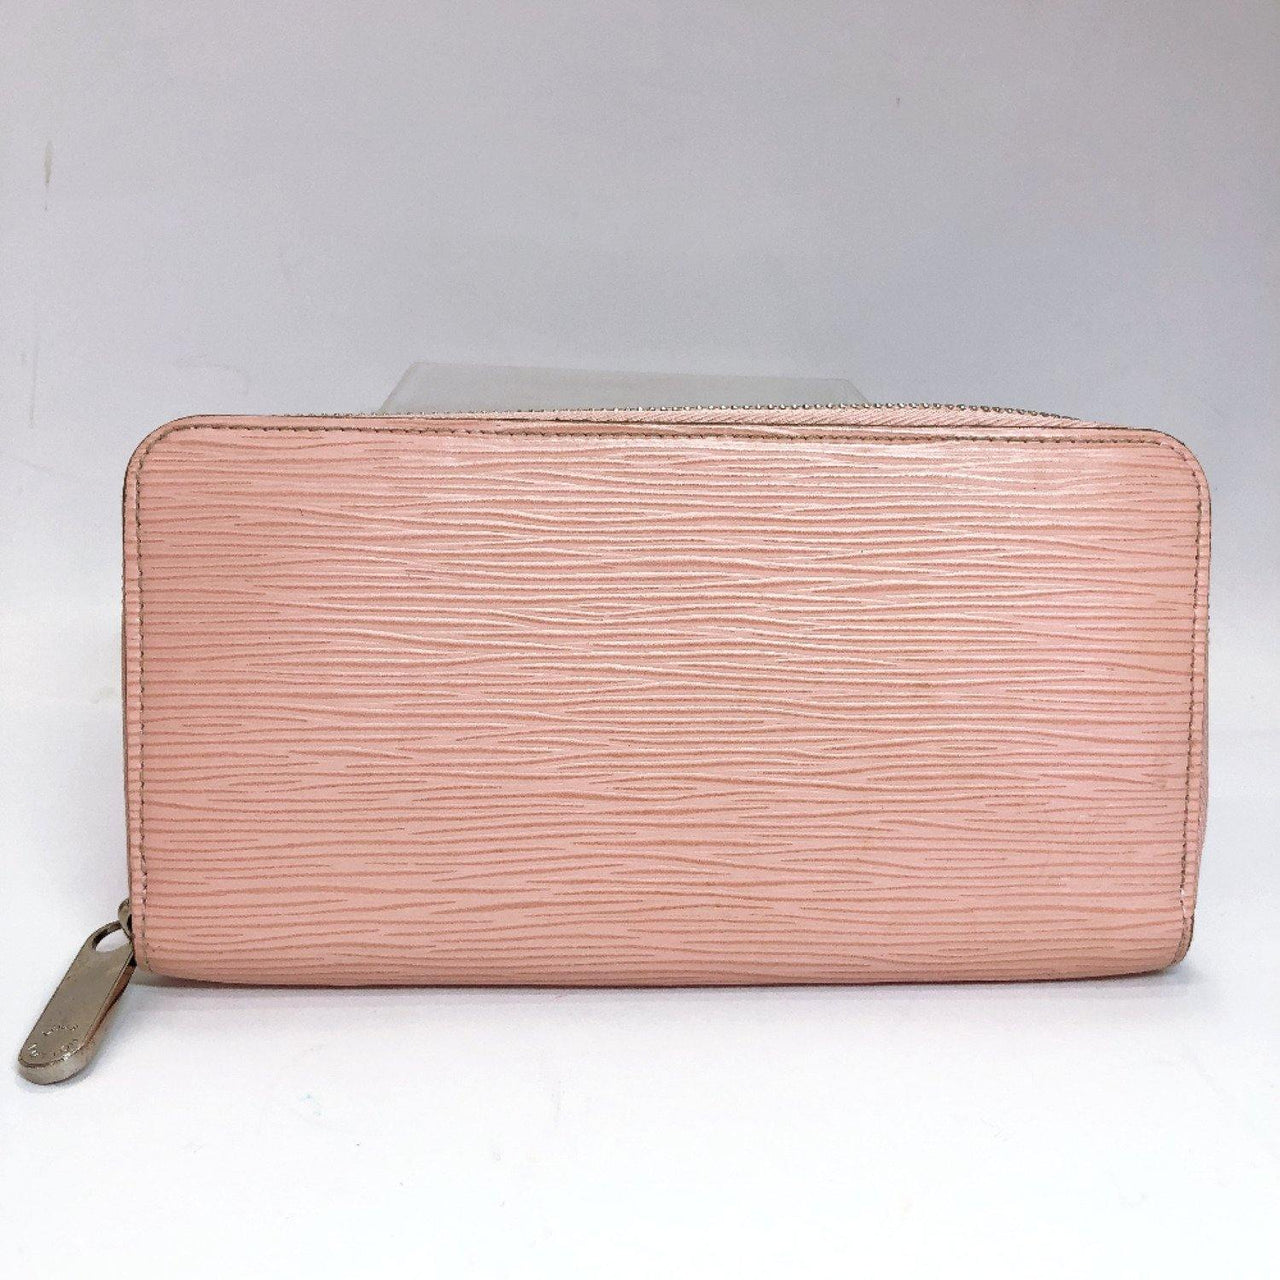 LOUIS VUITTON purse M60663 Zippy wallet Epi Leather pink Coraille Women Used - JP-BRANDS.com